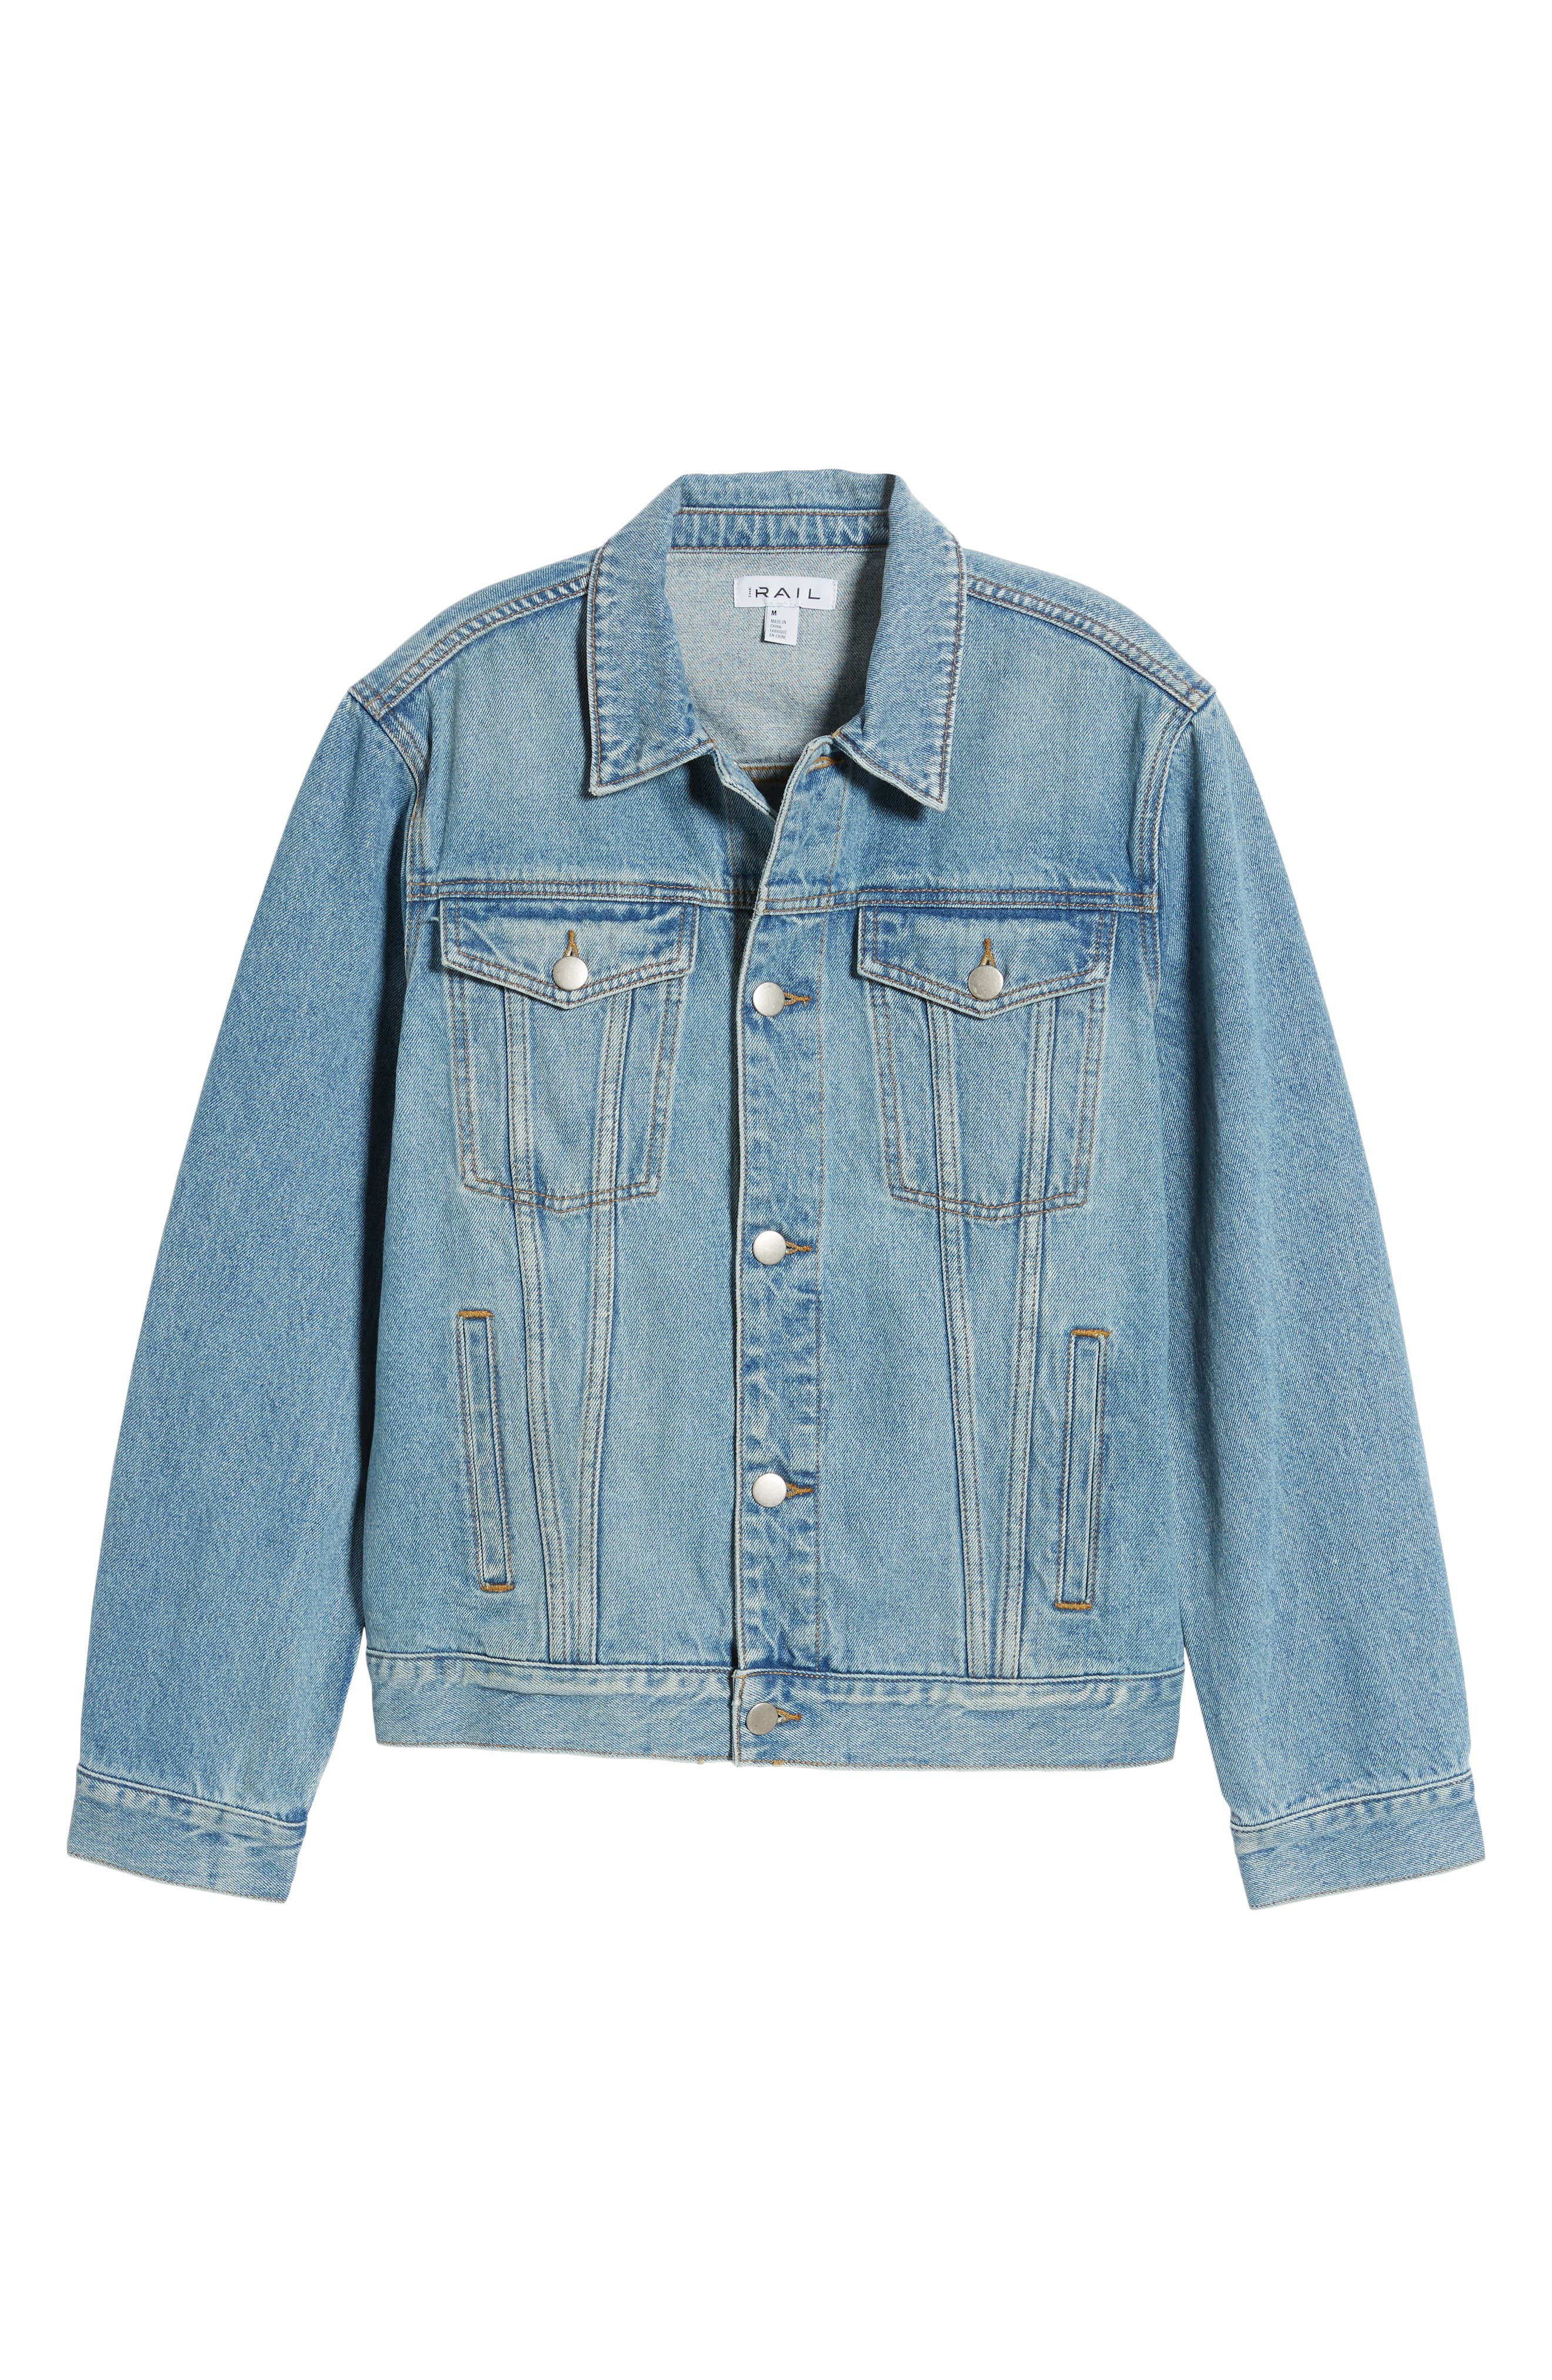 THE RAIL, Denim Jacket, Alternate thumbnail 6, color, BLUE TREK WASH